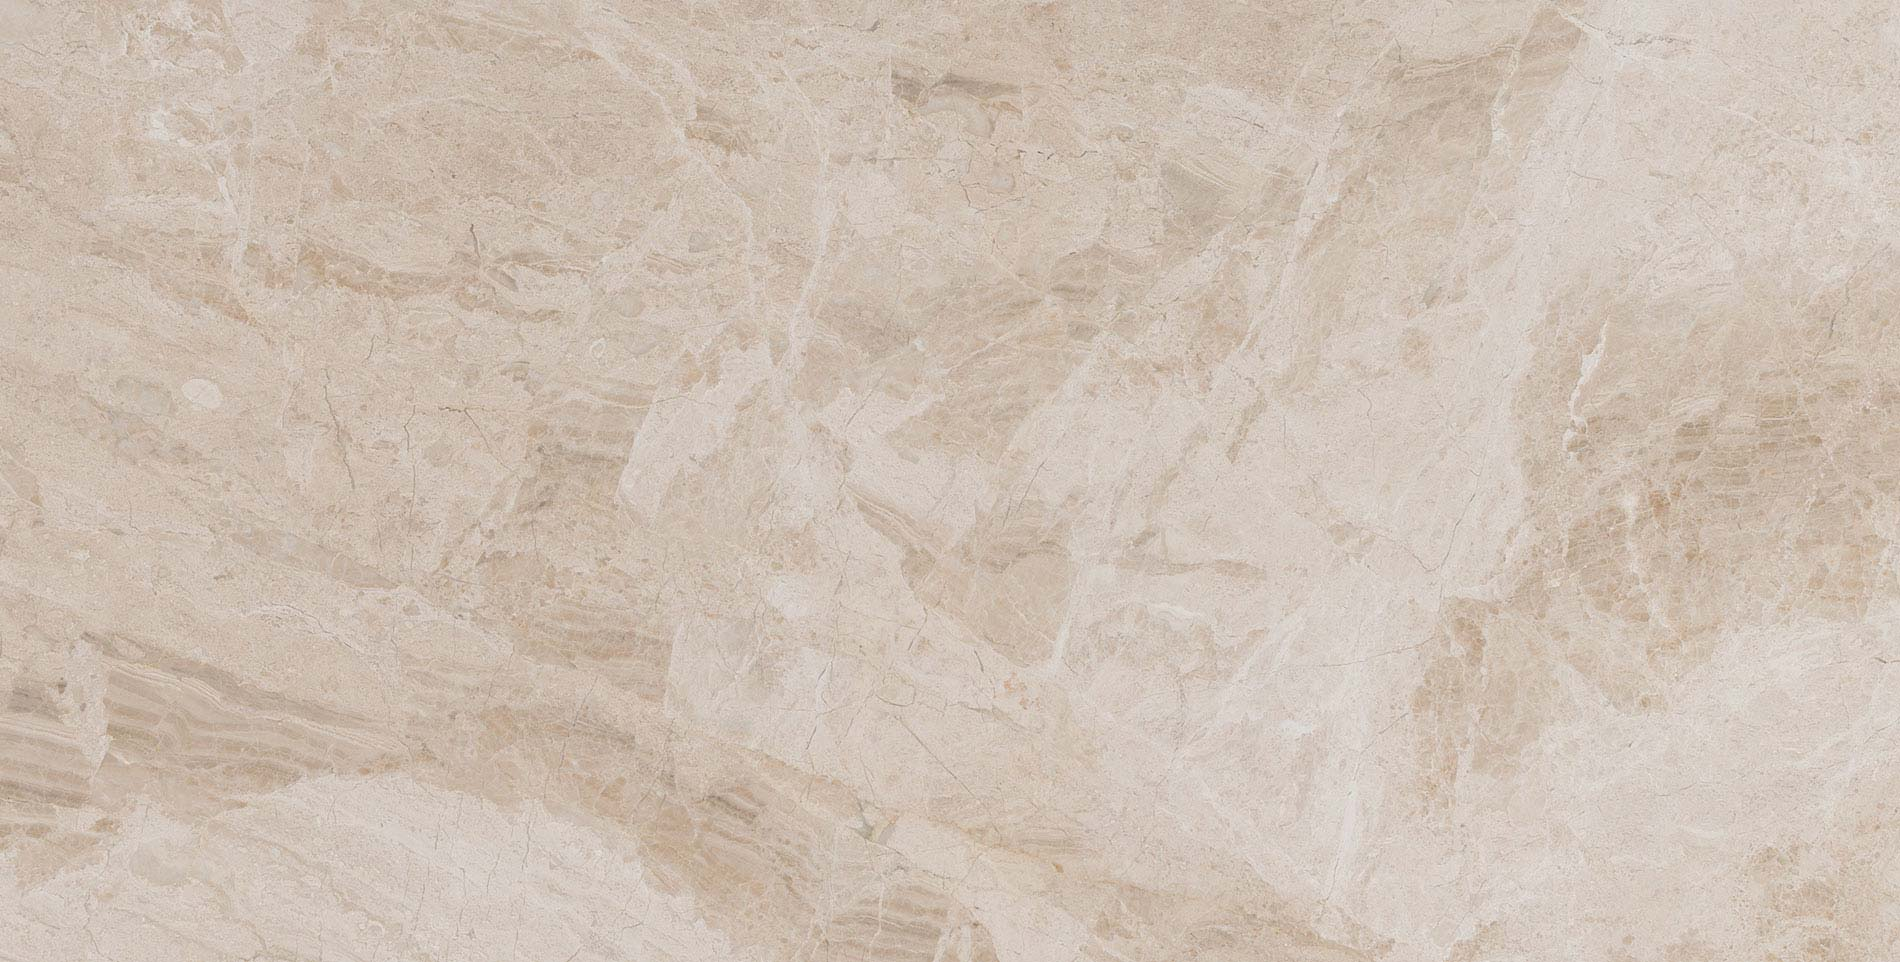 White Travertine Marble Supplier Buy White Travertine